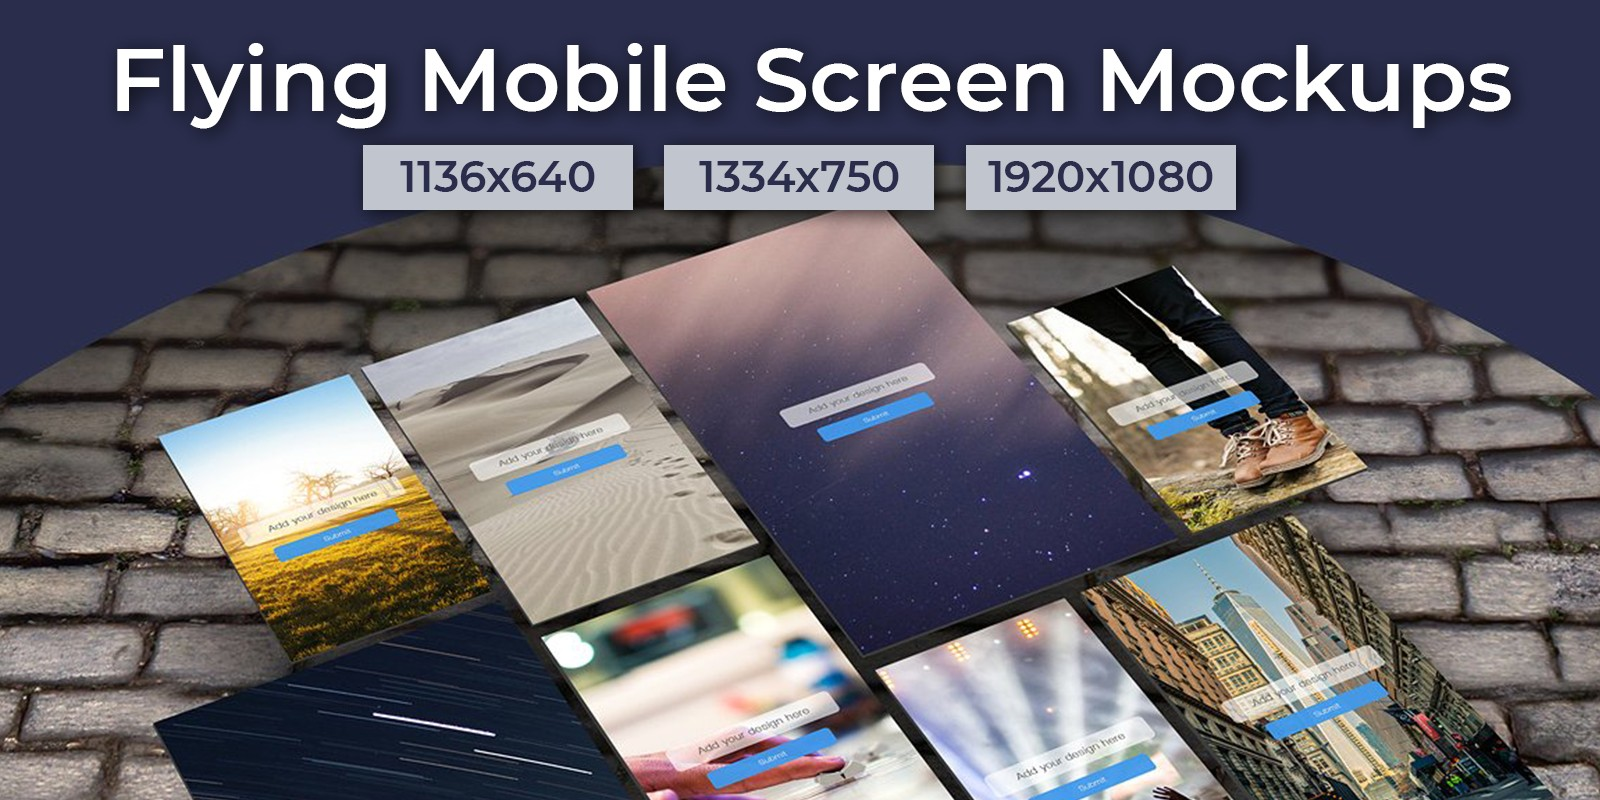 Flying Mobile Screen Mockups